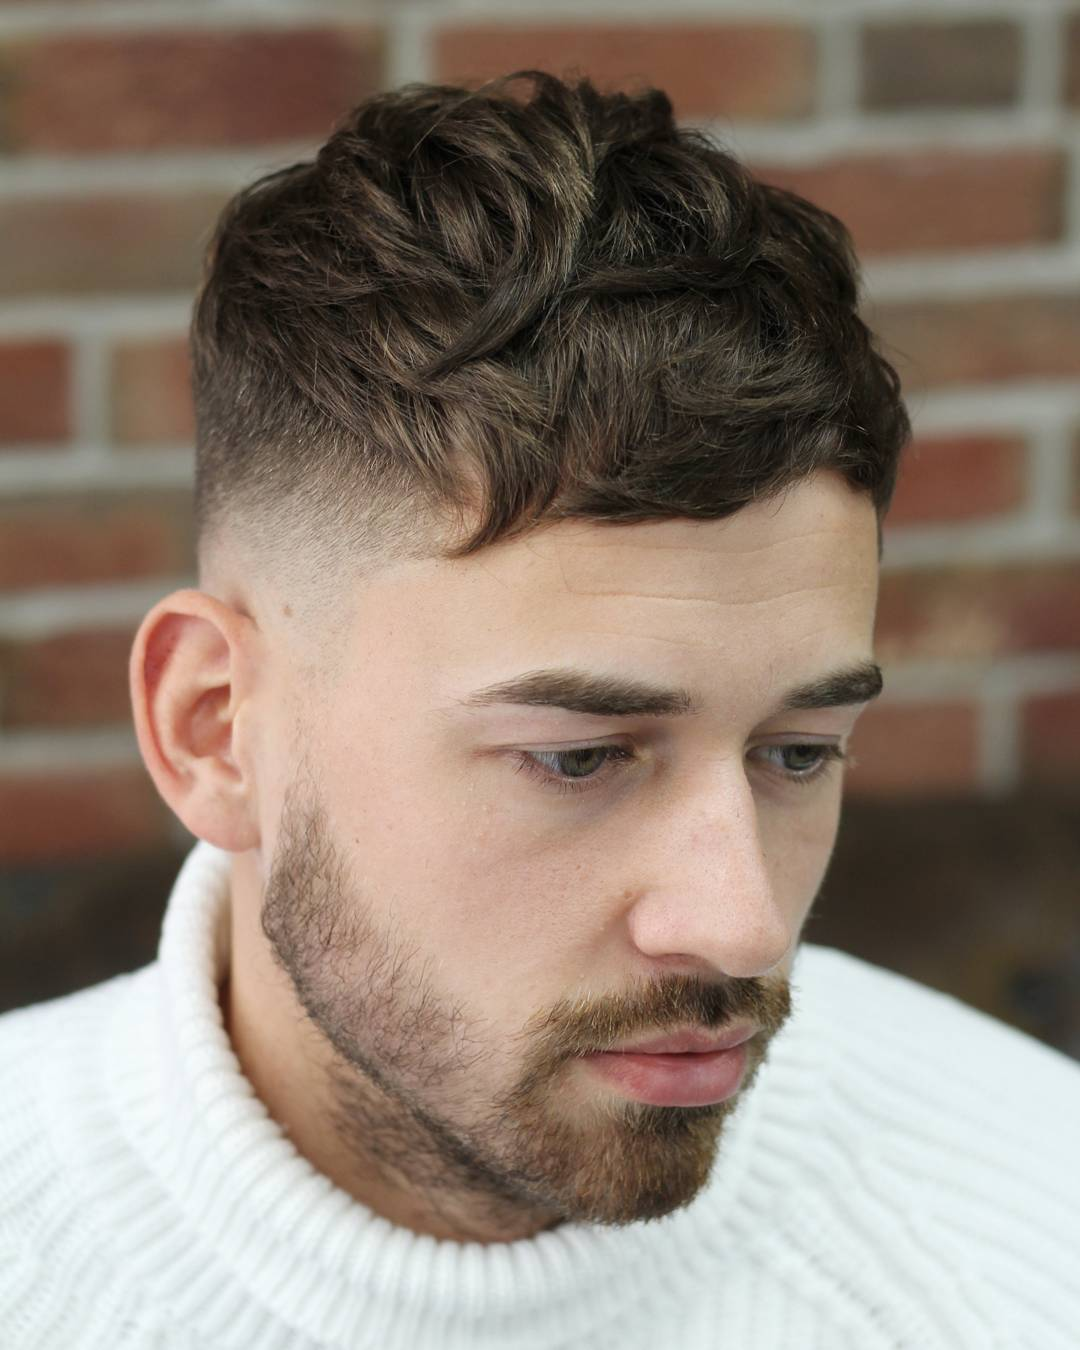 Short Haircut For Men Messy Fringe